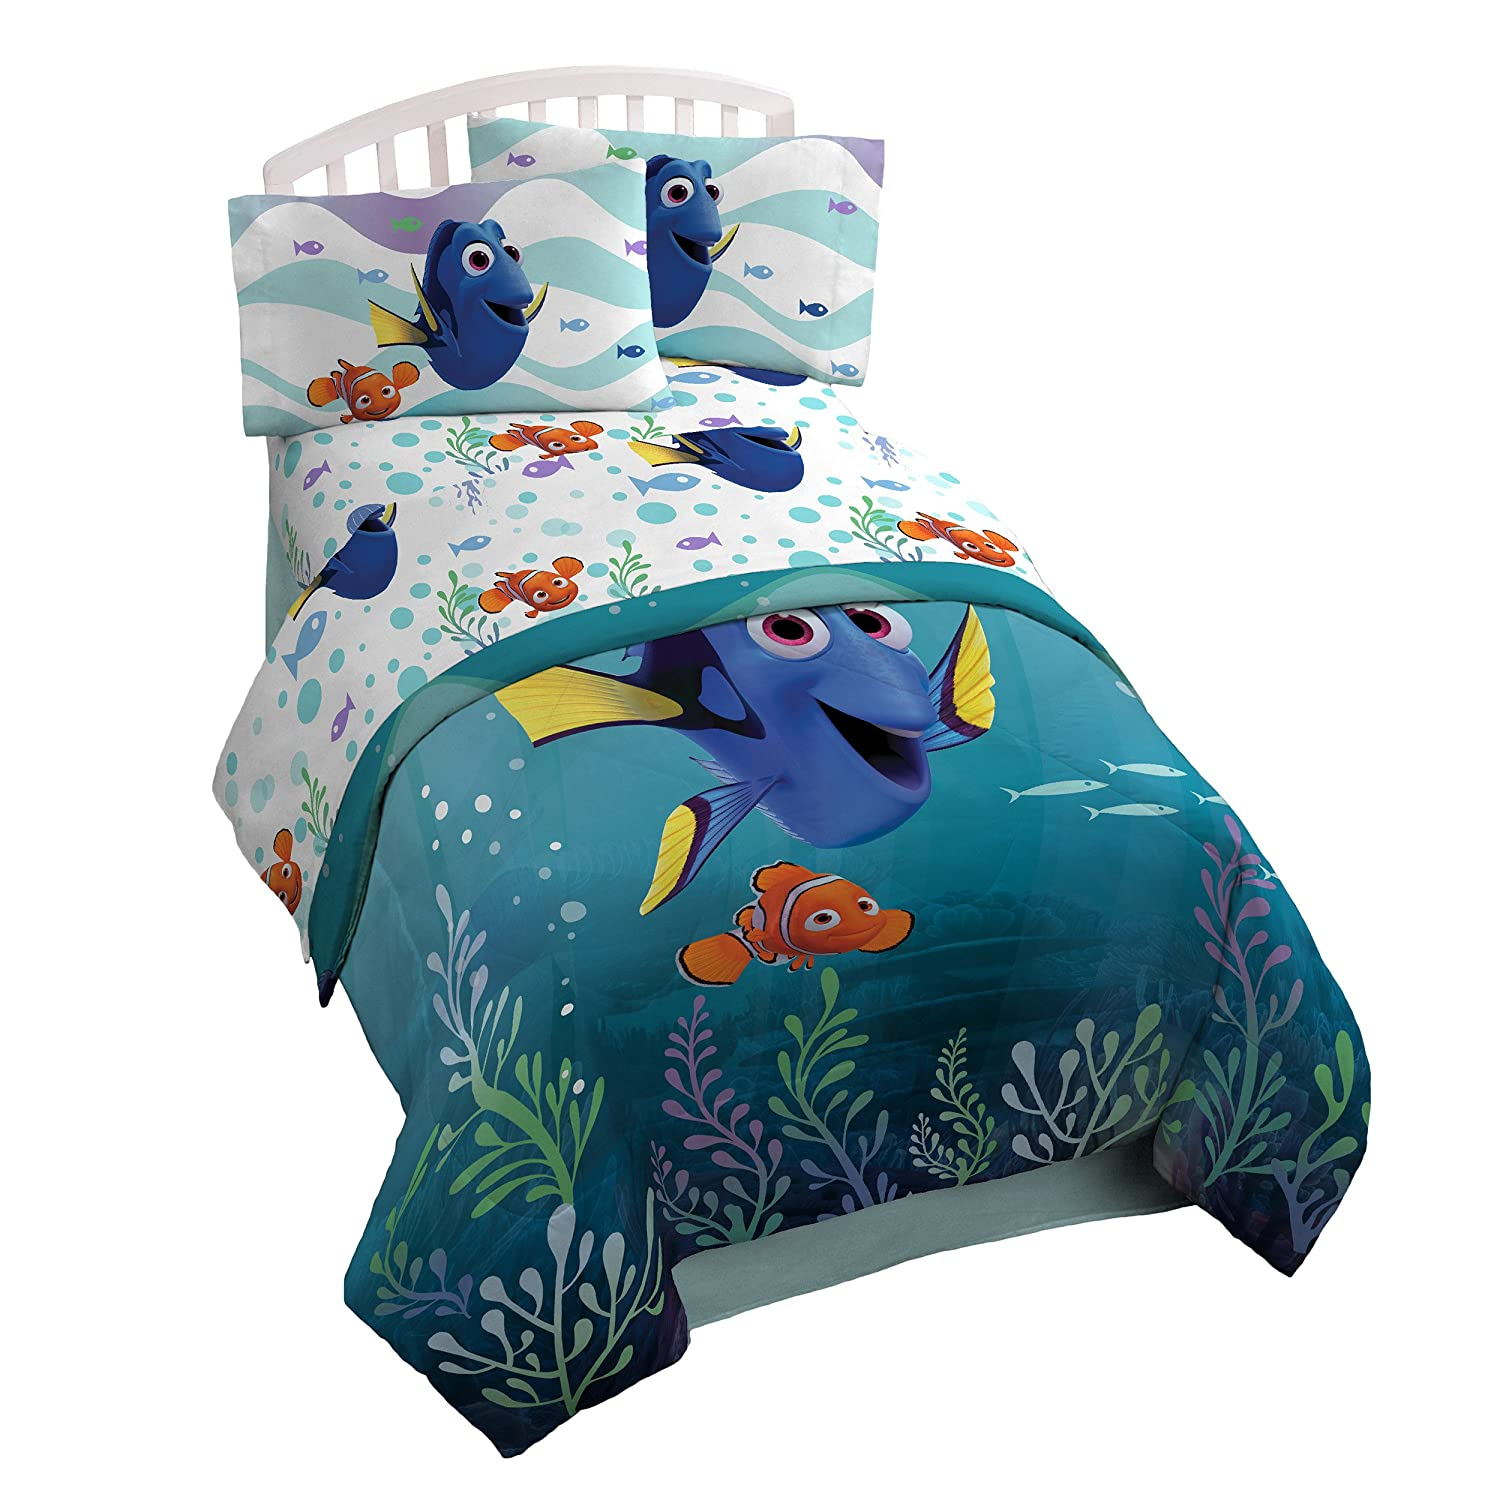 Disney/Pixar Finding Dory 'Sun Rays' 4 Piece Twin Bed In A Bag